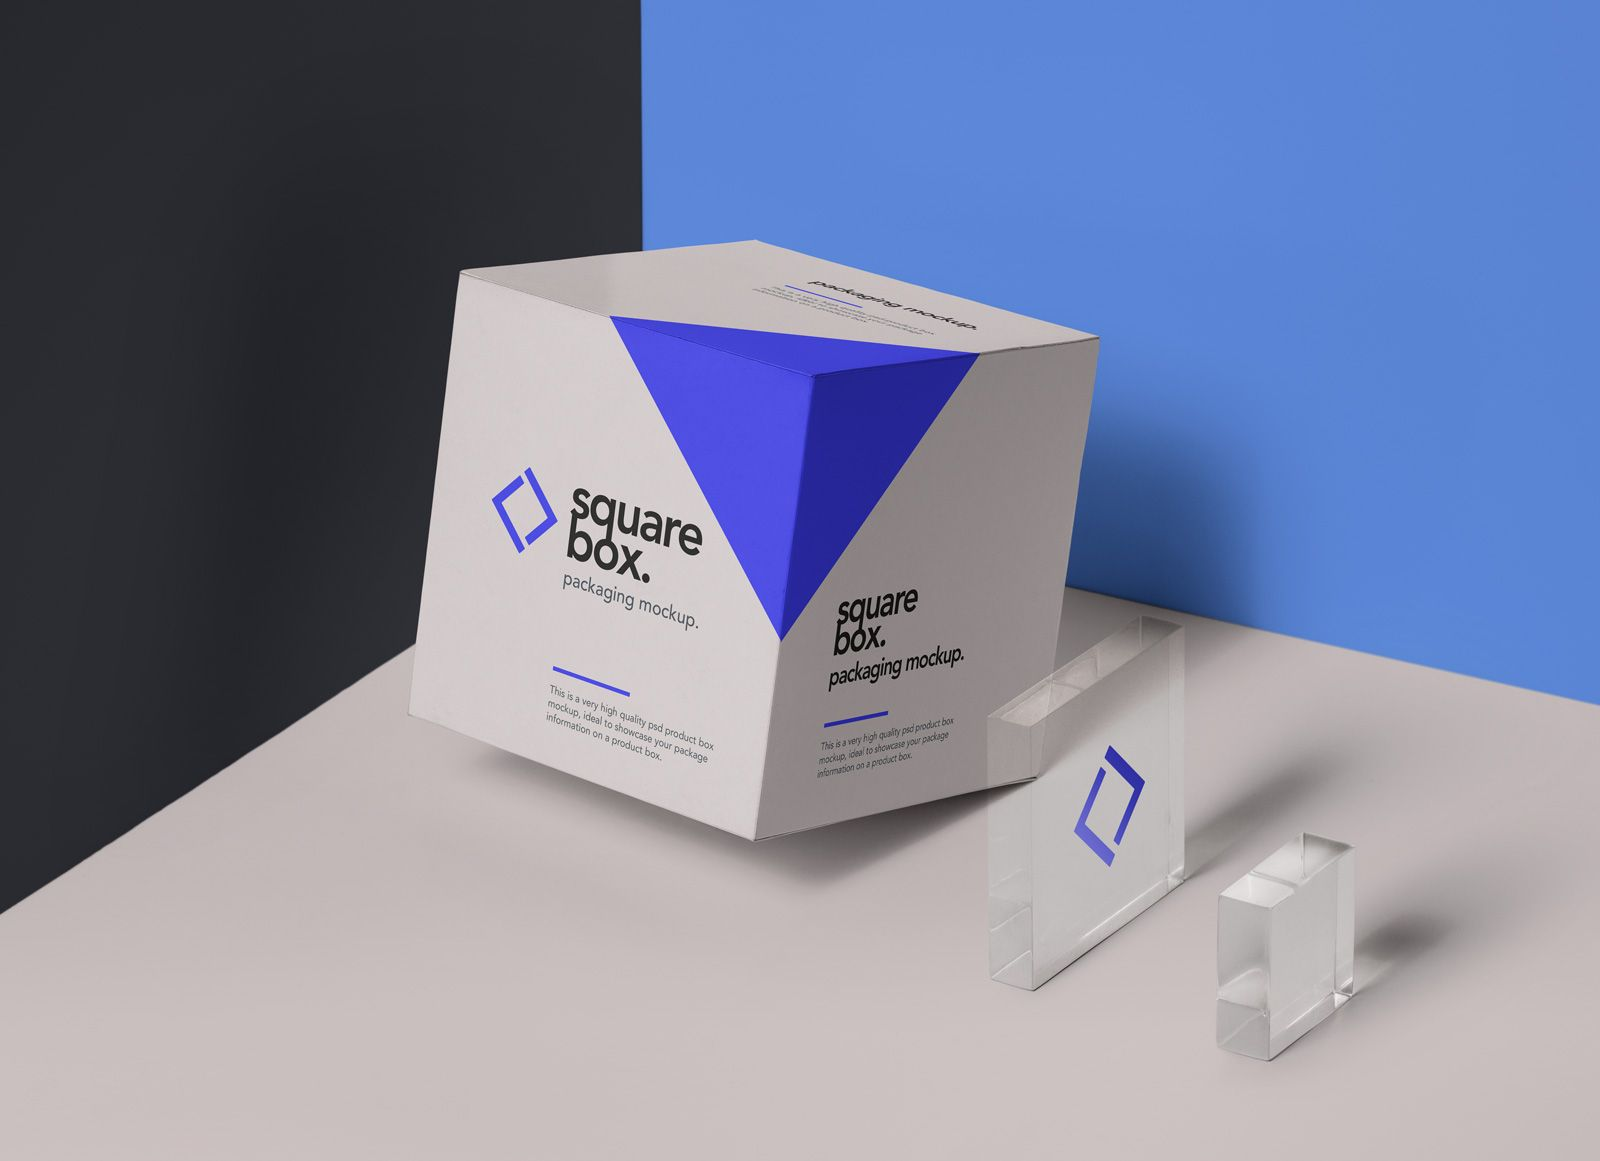 Download A Photoshop Generated Box Packaging Mockup Along With Two Glass Decorations To Deal With The Ne Packaging Template Design Box Packaging Design Packaging Mockup